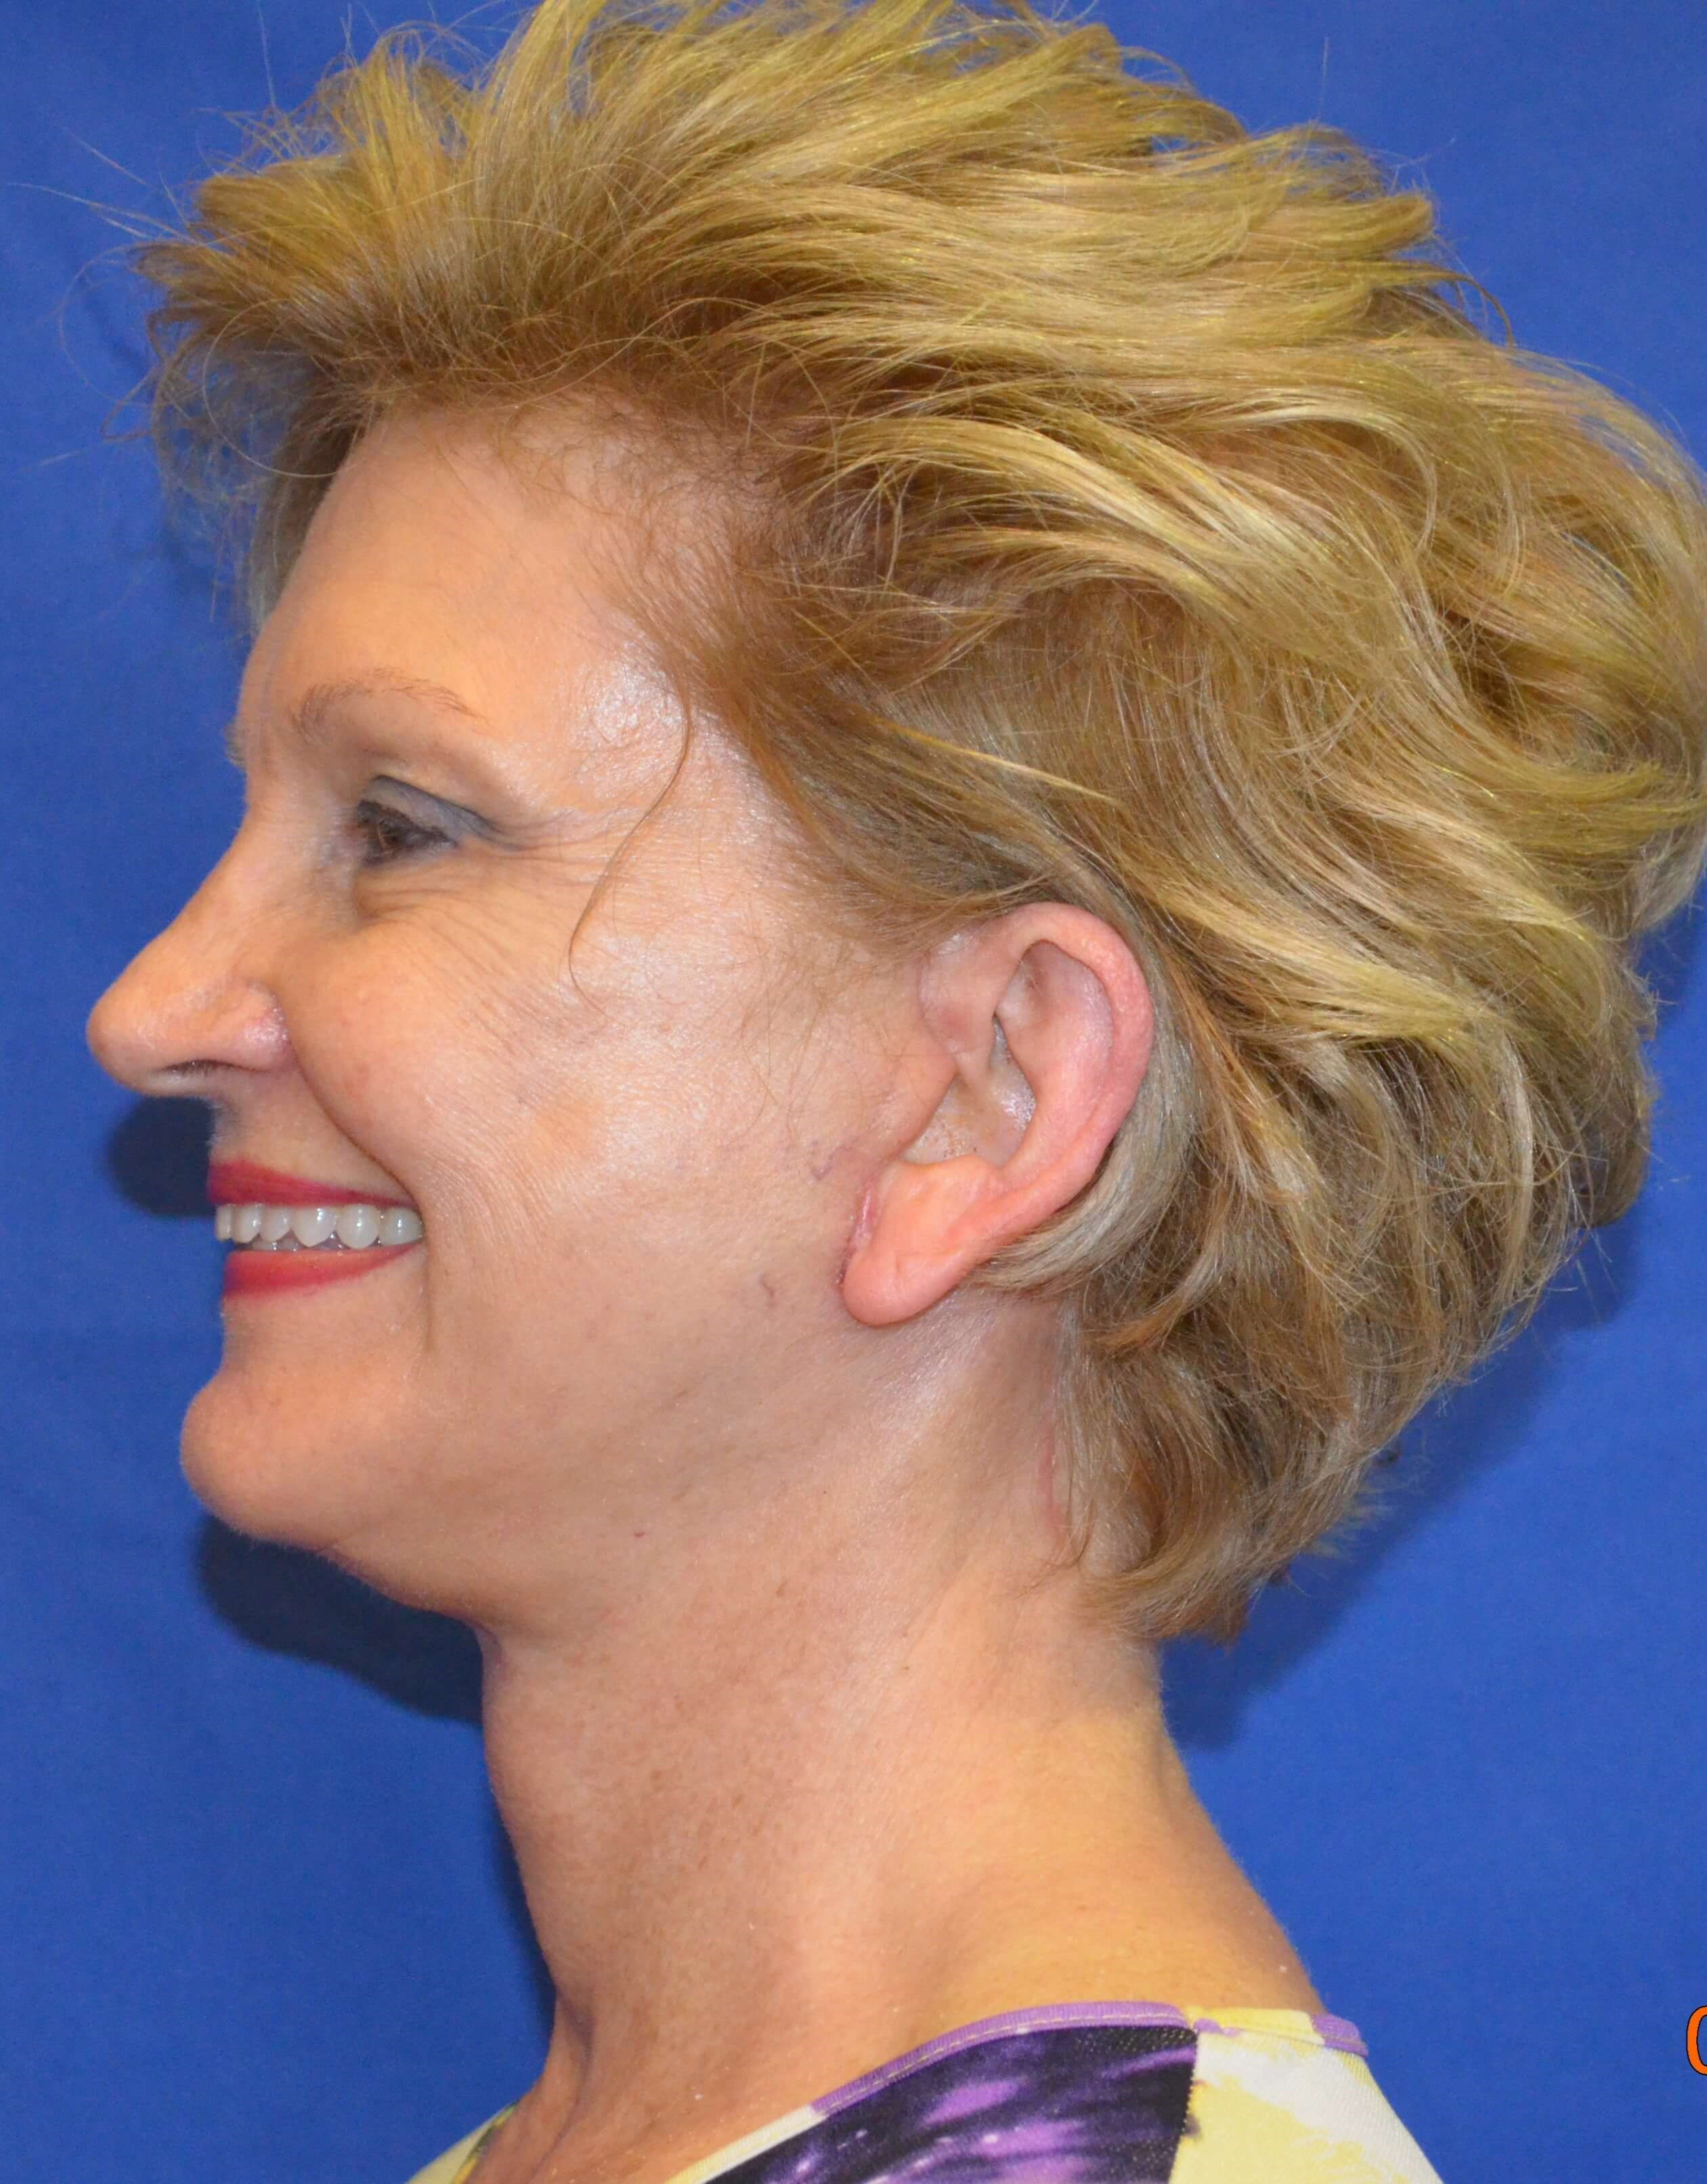 Face/Neck Lift Procedure After